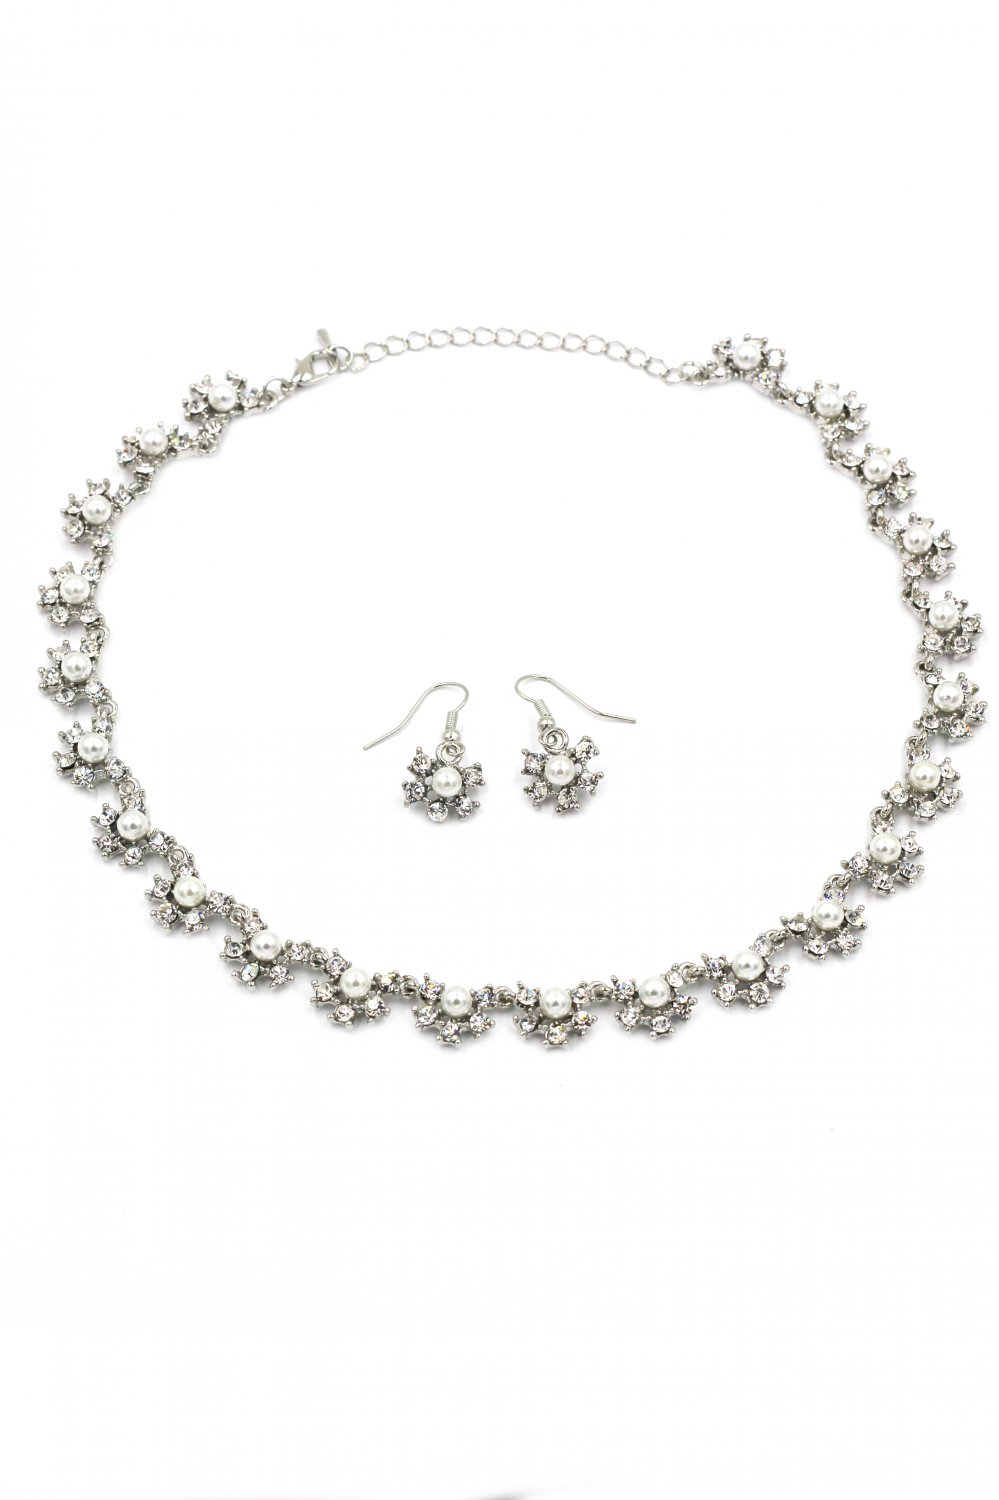 Classic crystal and pearl necklace earrings silver set